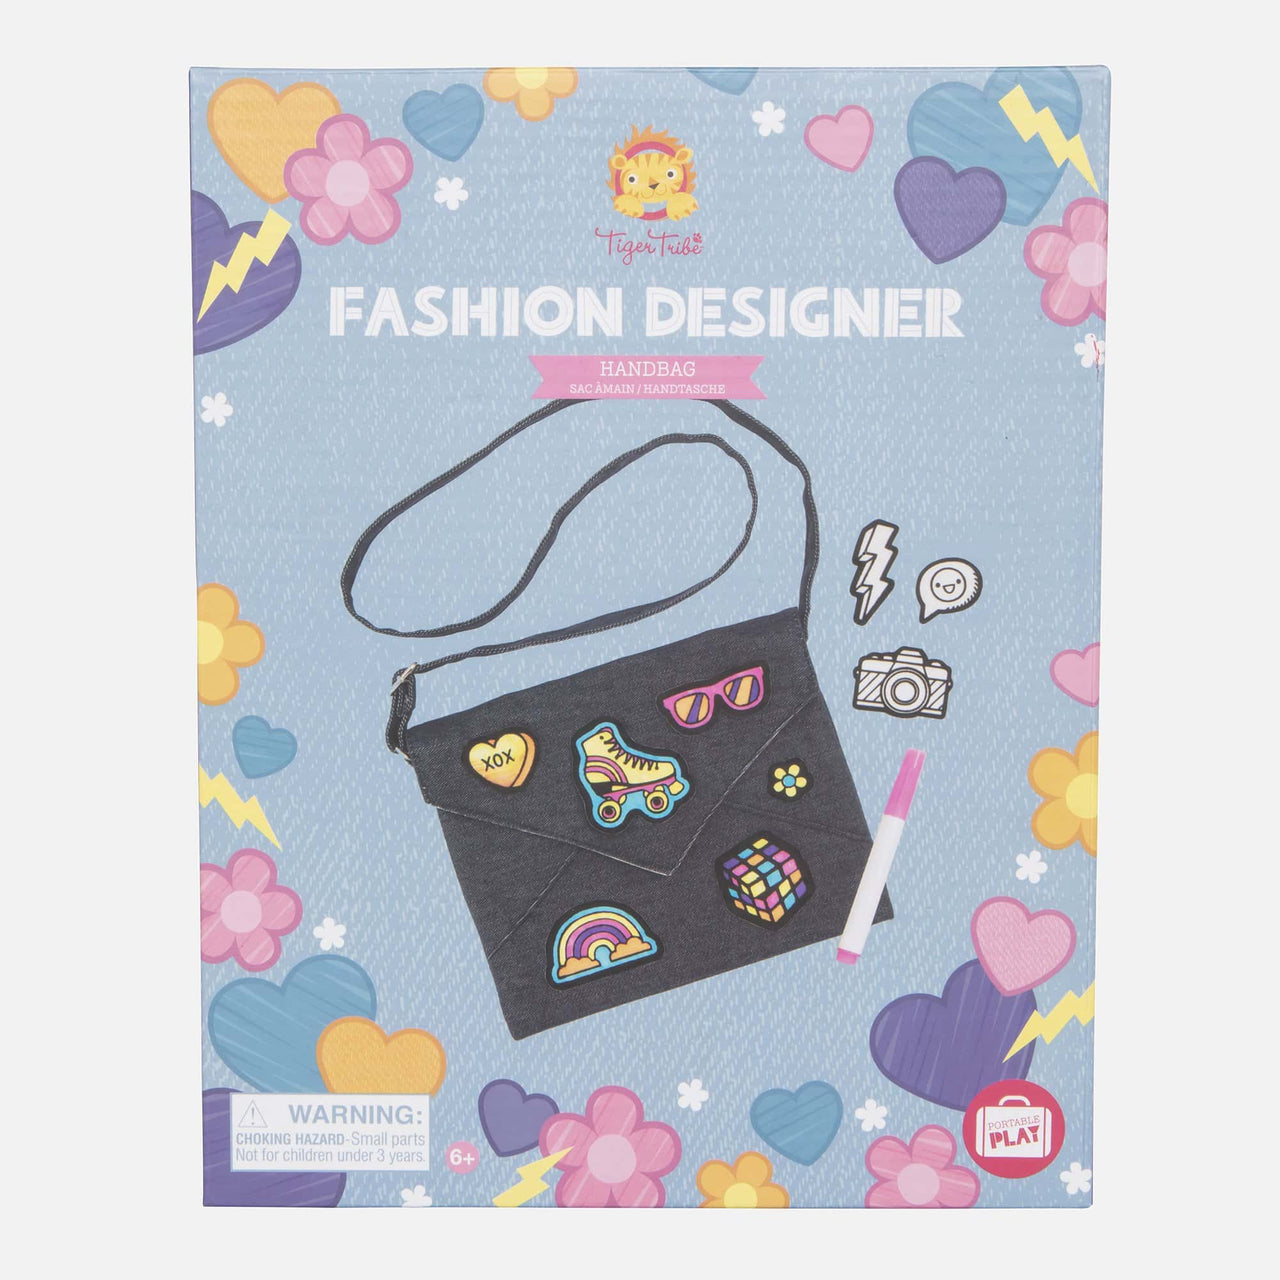 Fashion Designer - Handbag